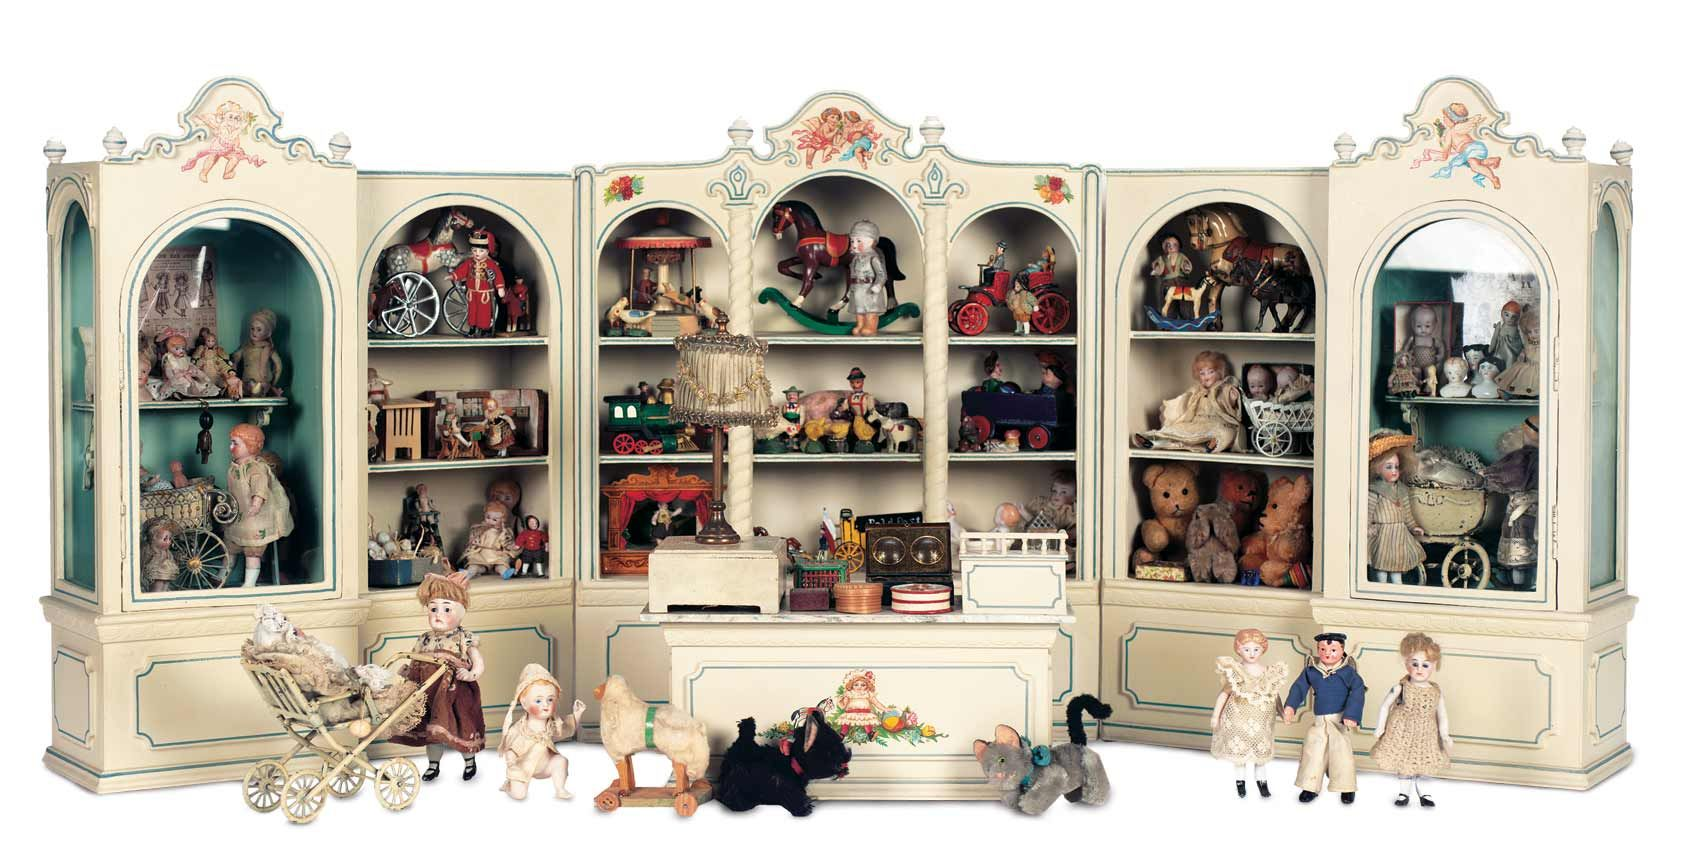 Puppen Spielzeug Museum 1 Wooden Miniature Toy Shop Filled With